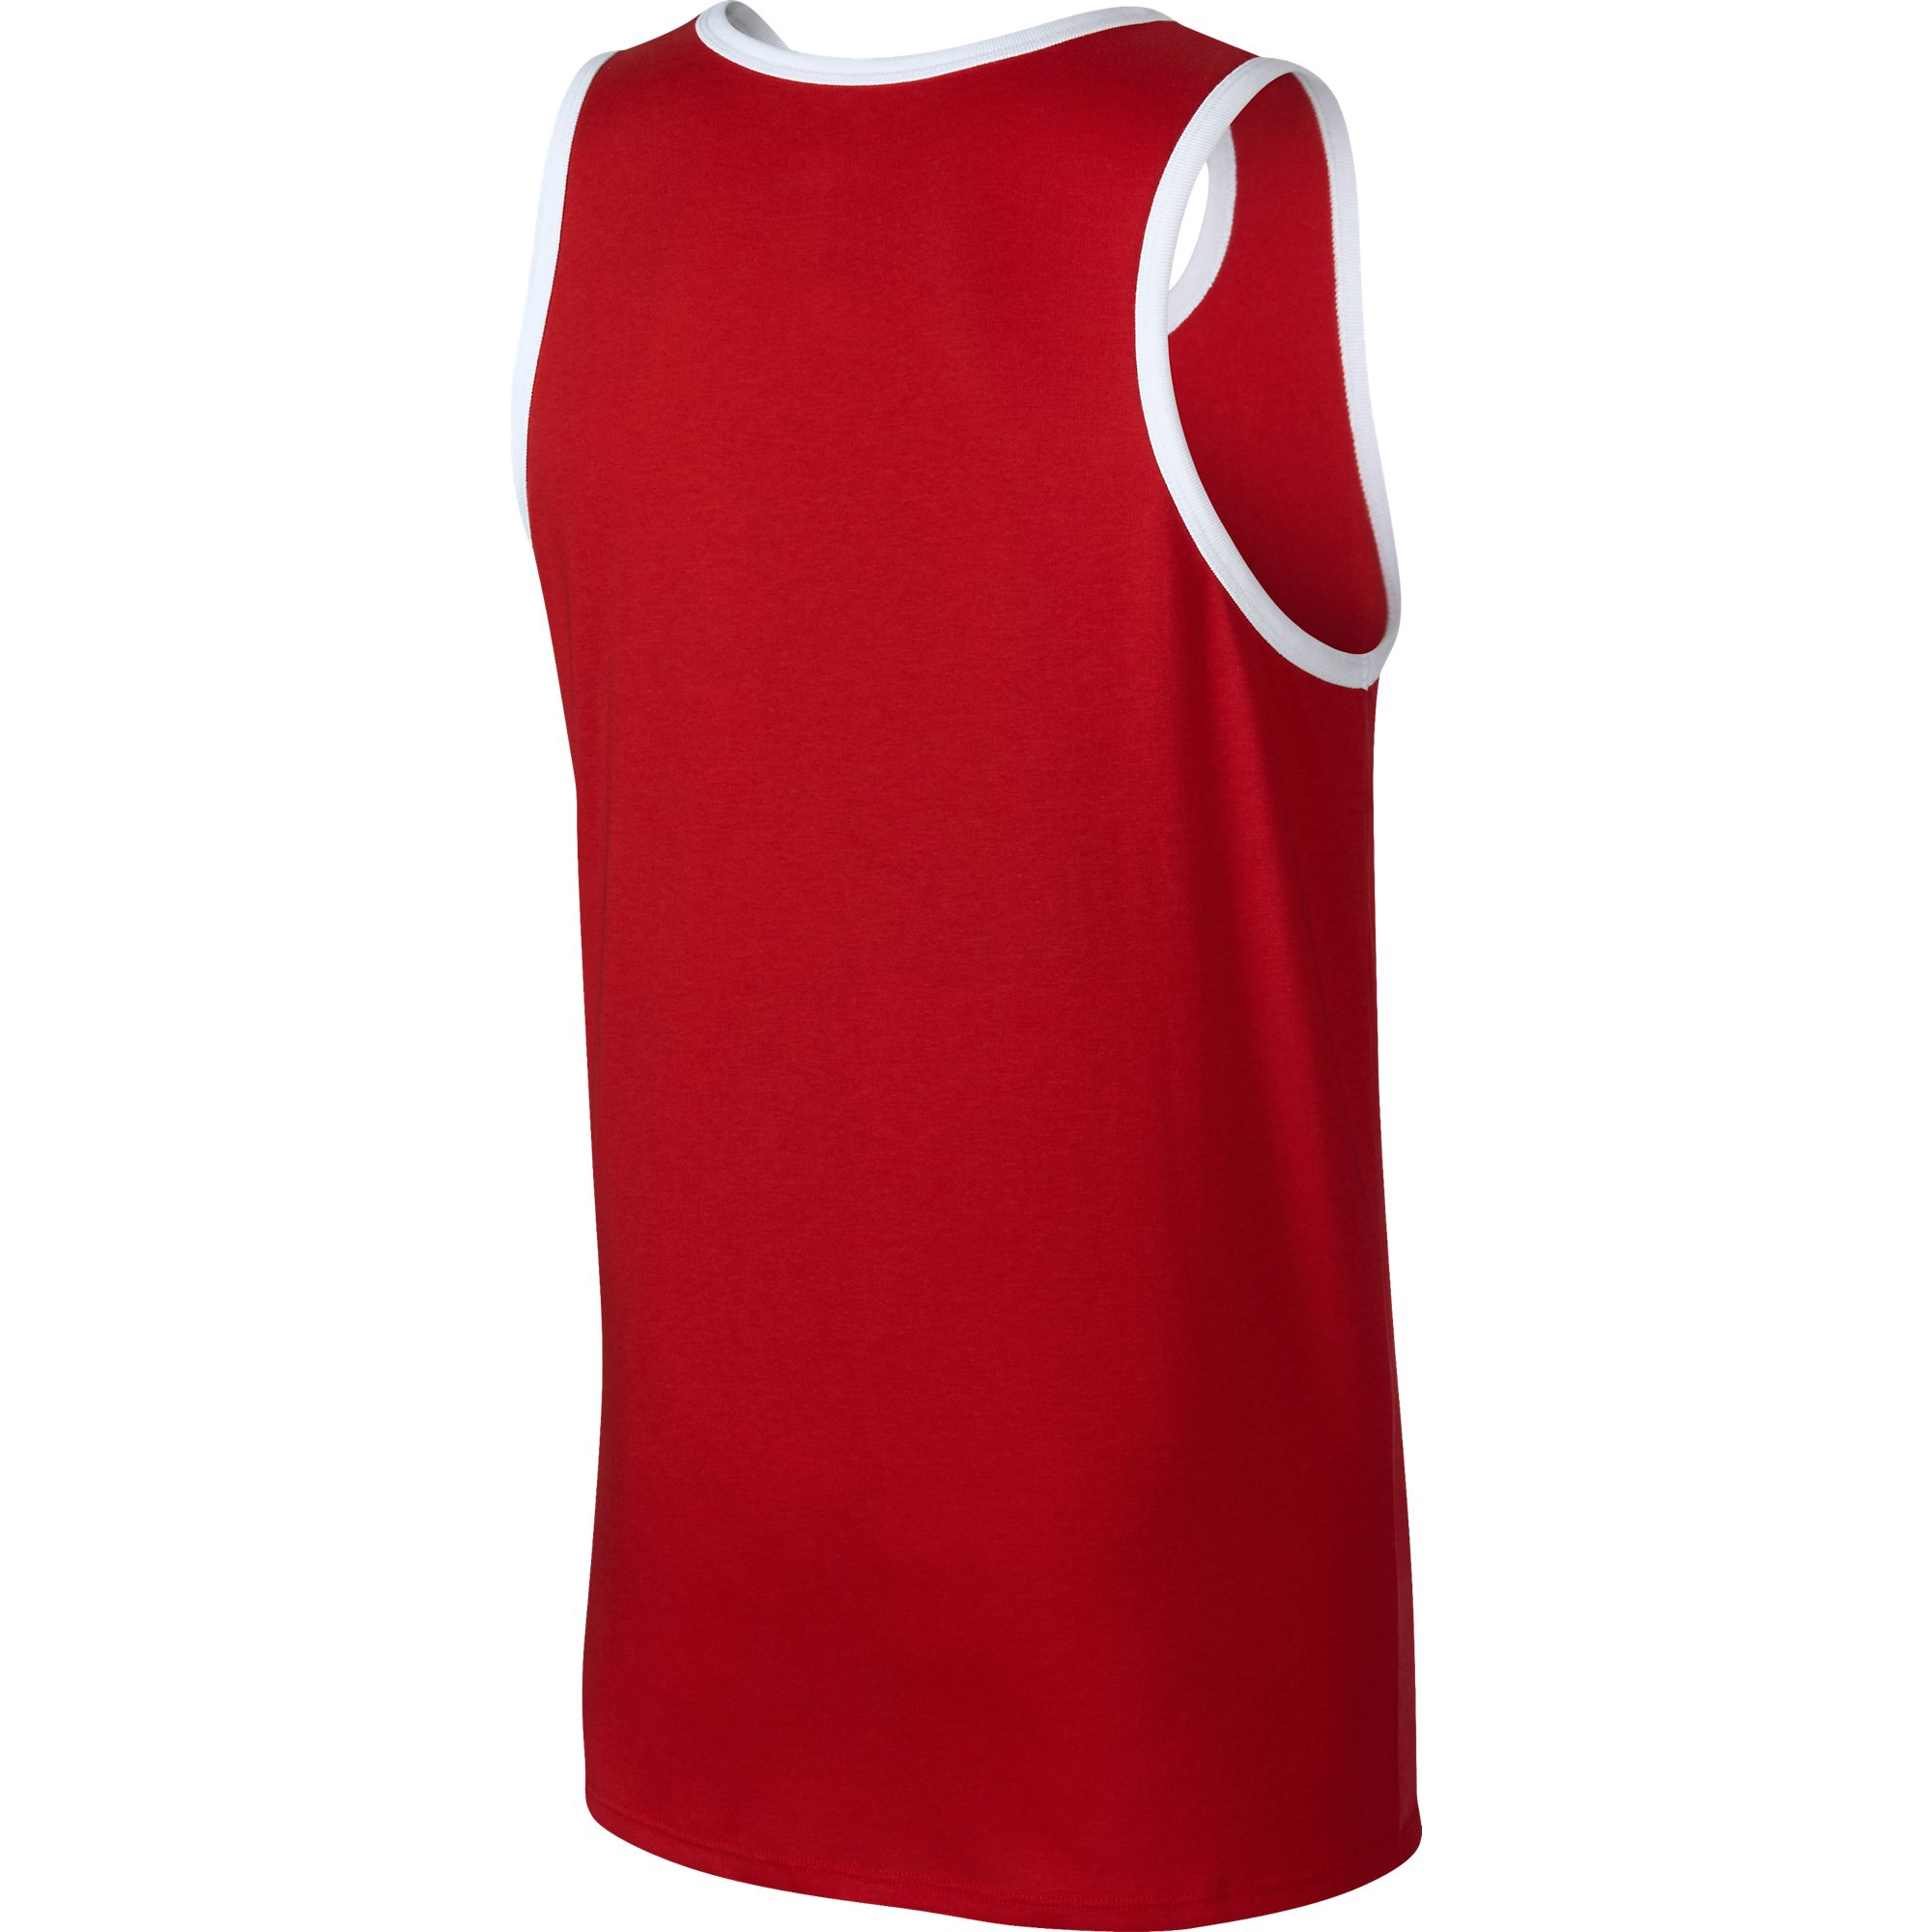 d27da2fef4955 Nike ACE Logo Men s Tank Top Athletic Red White Black 779234-657 -  Walmart.com